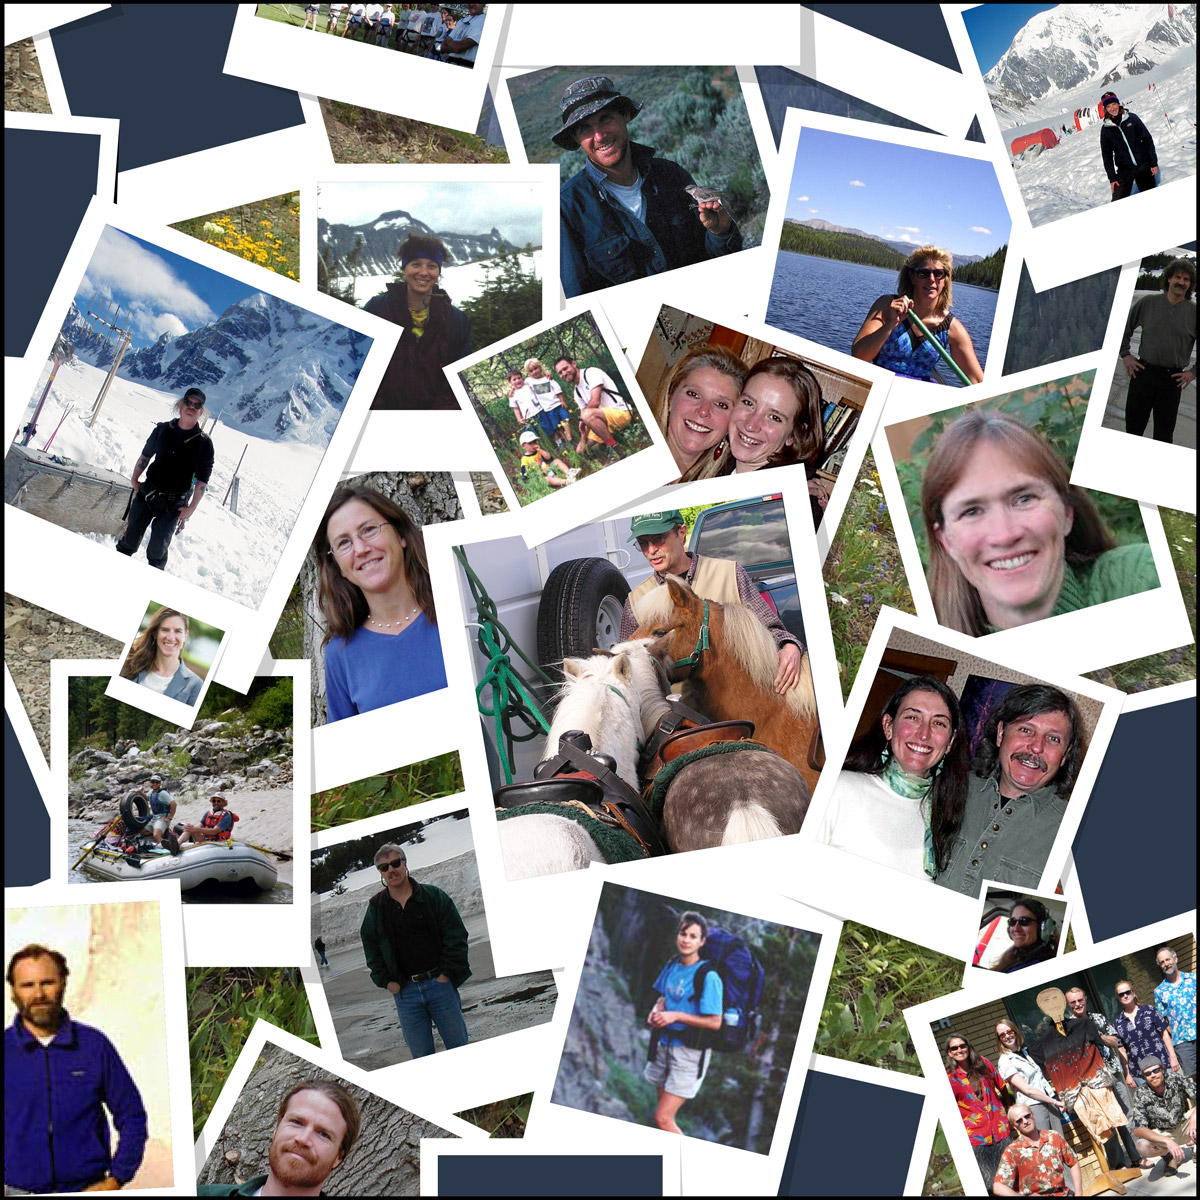 Image collage of Aldo Leopold staff